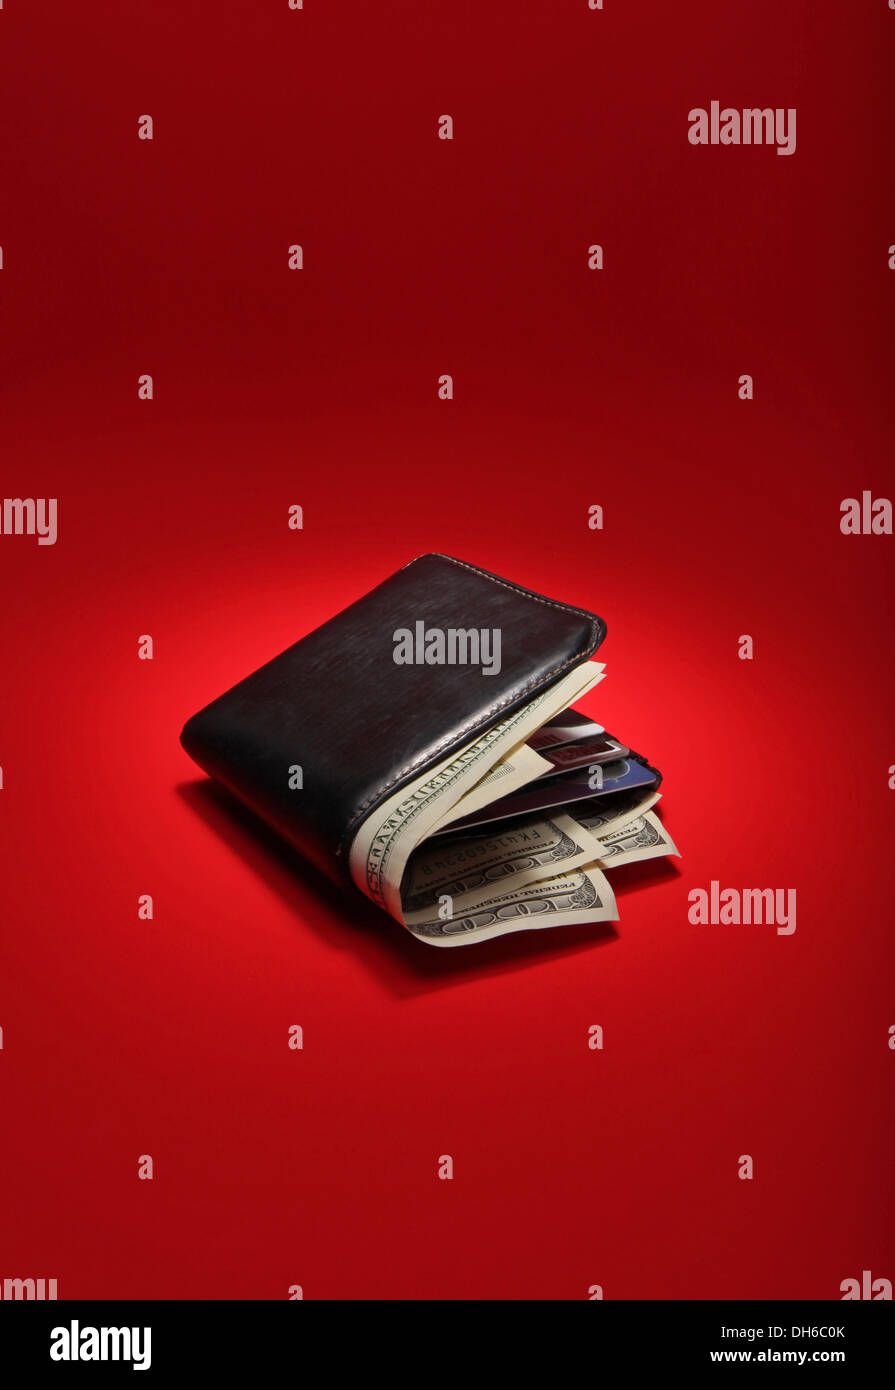 A black leather wallet filled with US currency on a bright red background - Stock Image